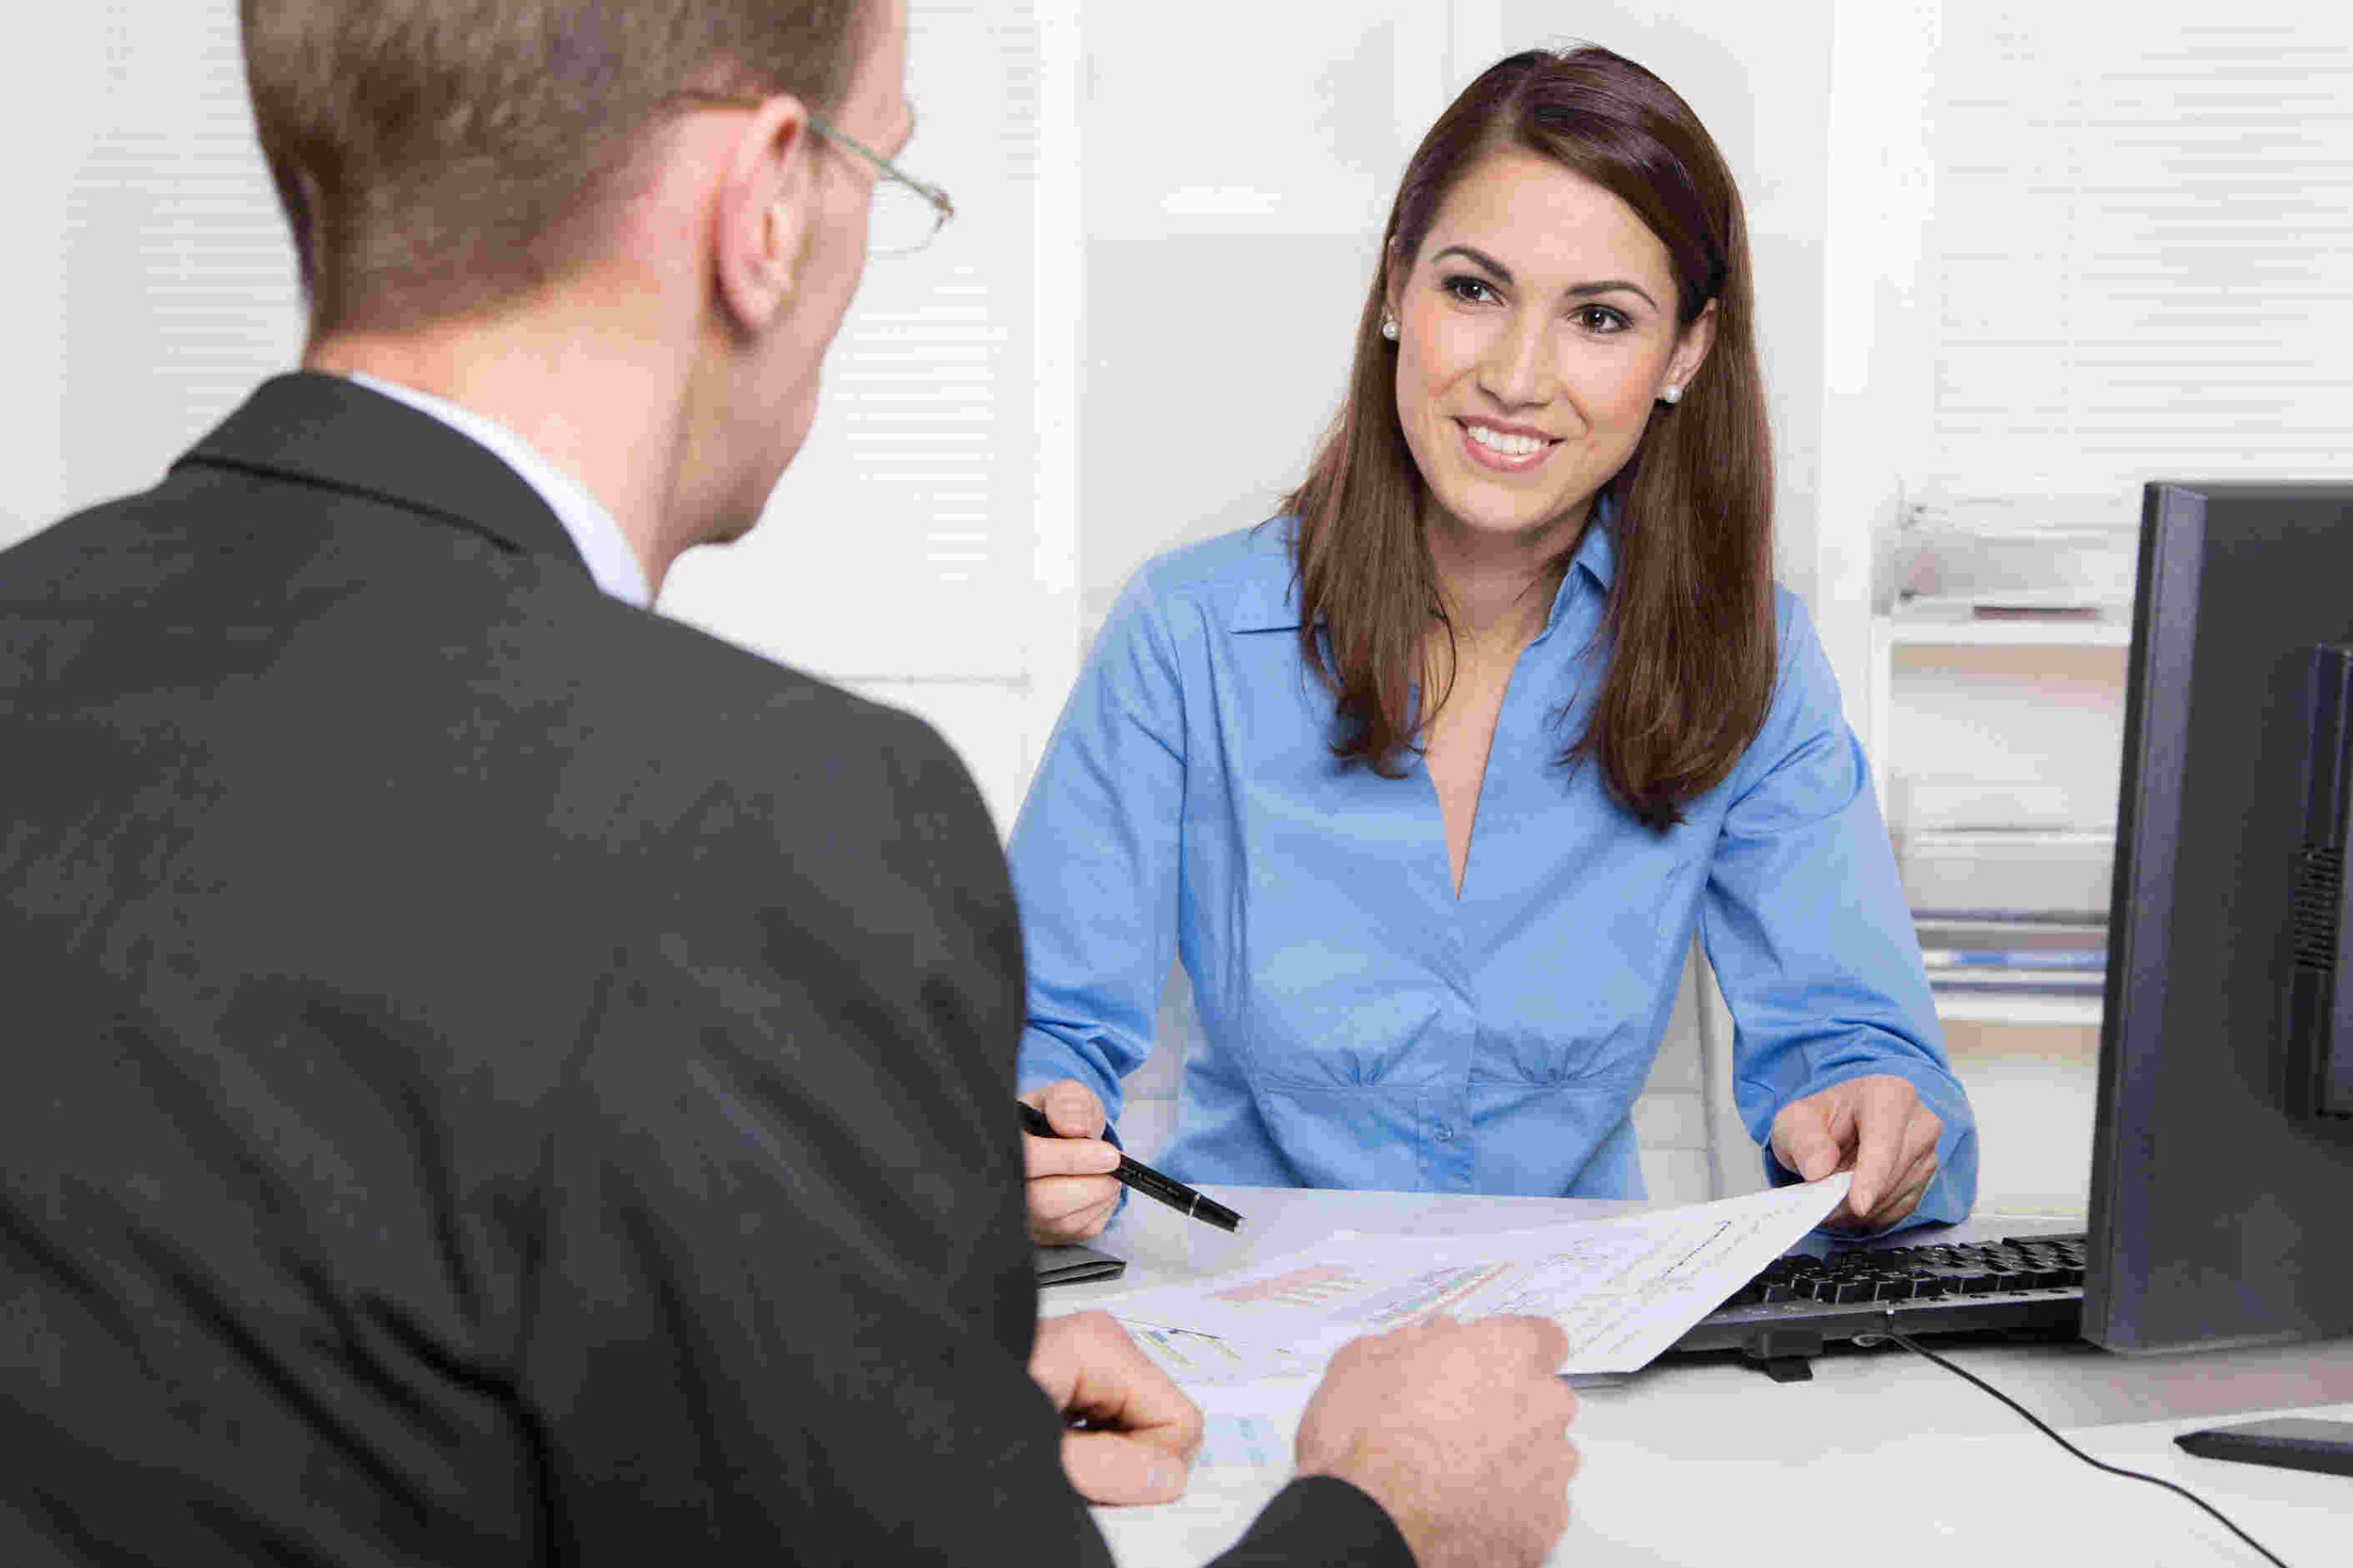 woman-and-man-discussing-paperwork-at-desk.jpg